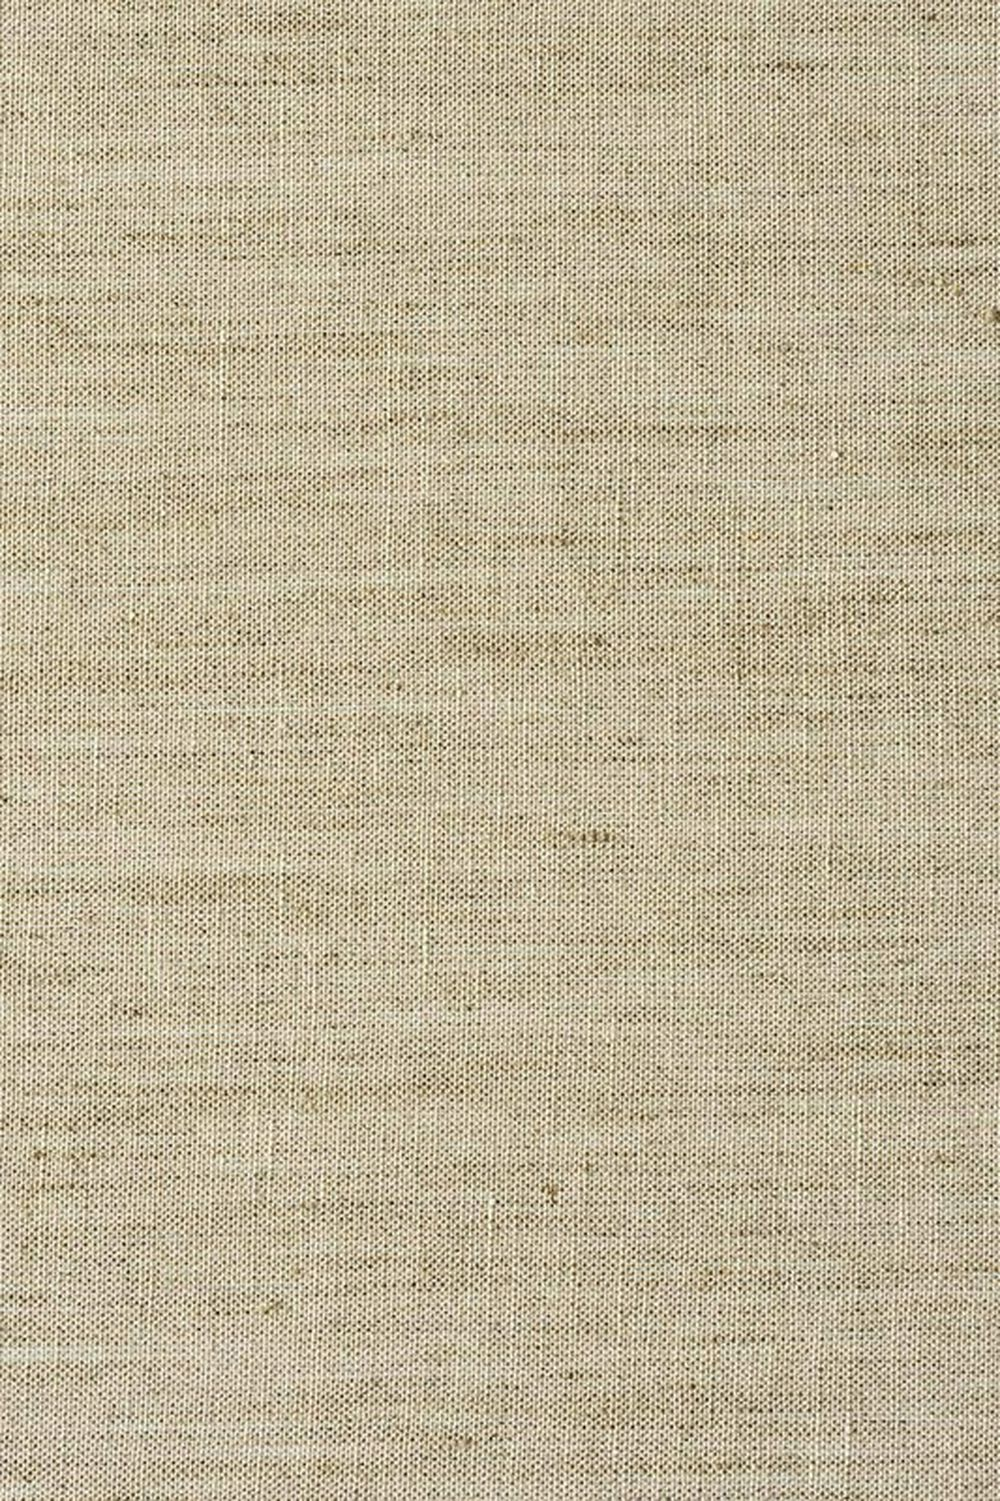 Photo of the fabric Kyoto Grain swatch by James Dunlop. Use for Curtains. Style of Plain